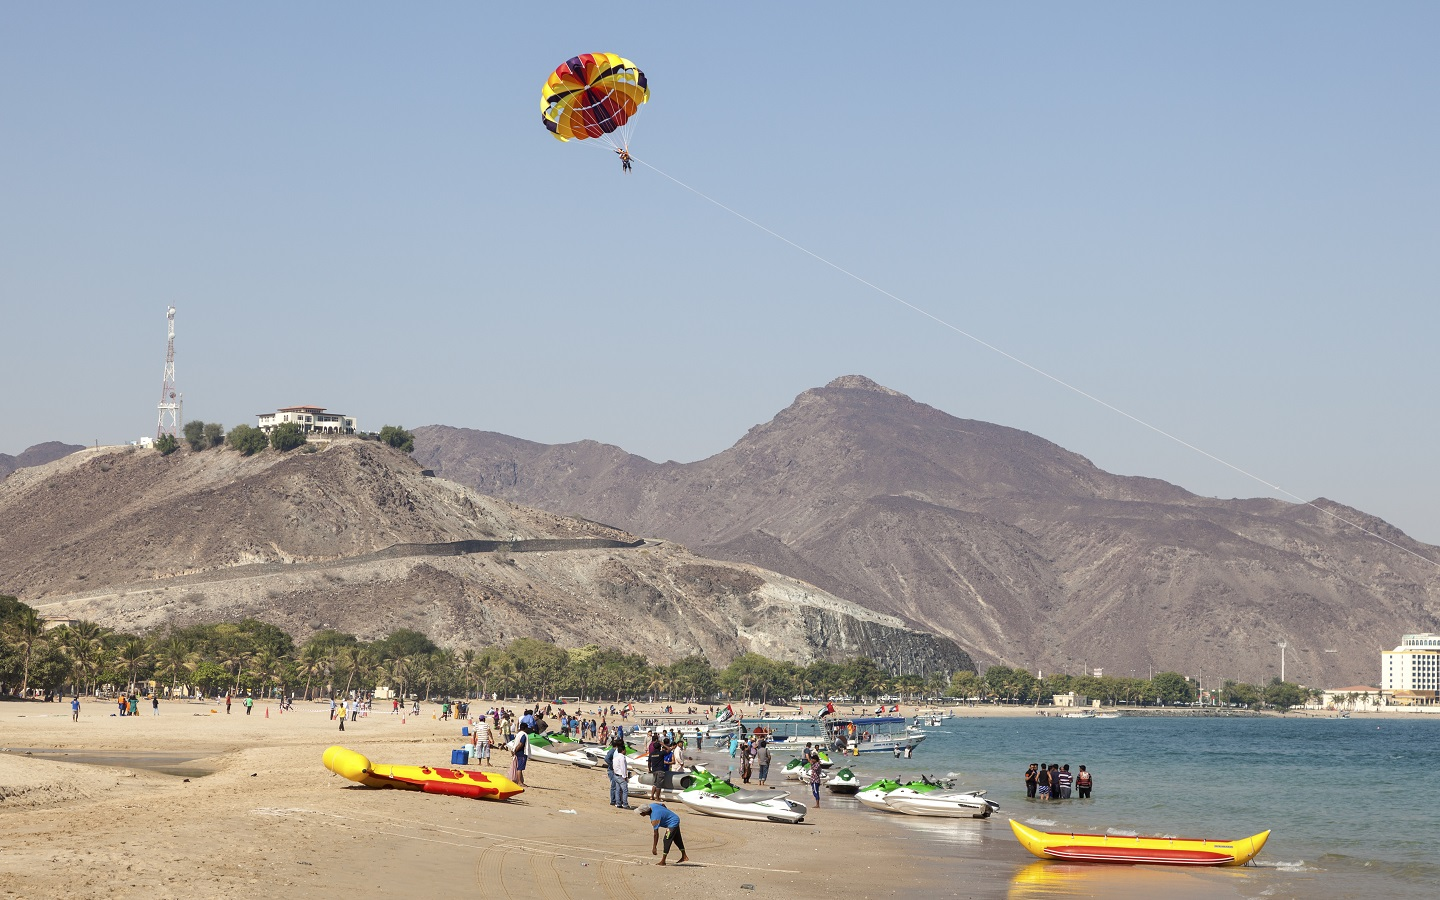 Boats on the shore of Khorfakkan Beach and parasailing activity